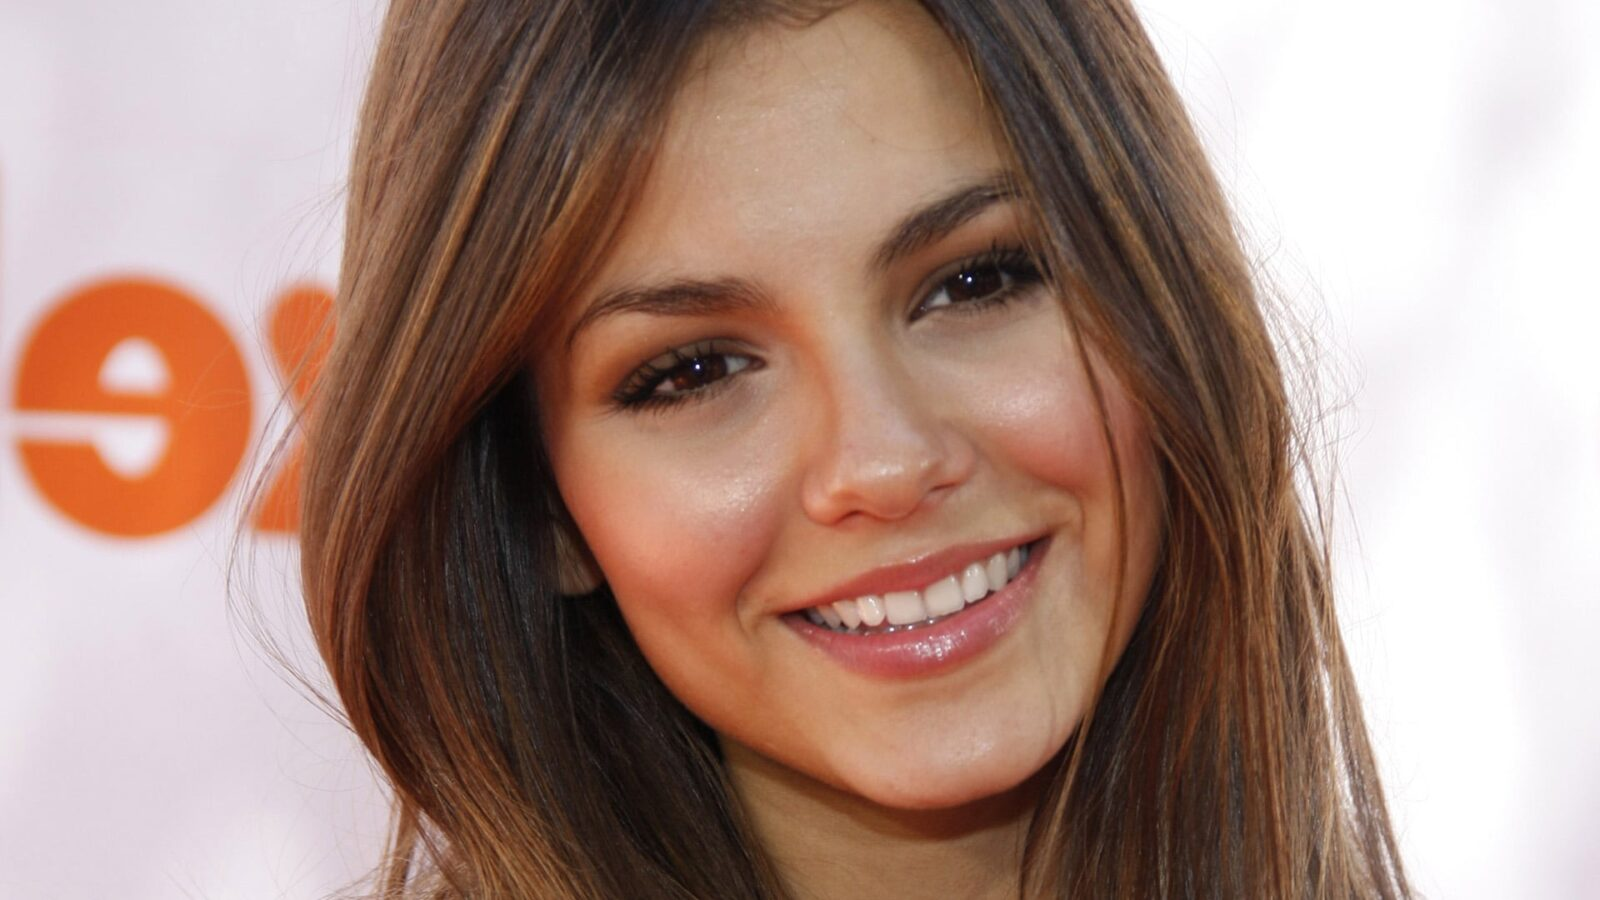 Black Girly Wallpapers For Iphone Victoria Justice Hd Wallpapers High Quality